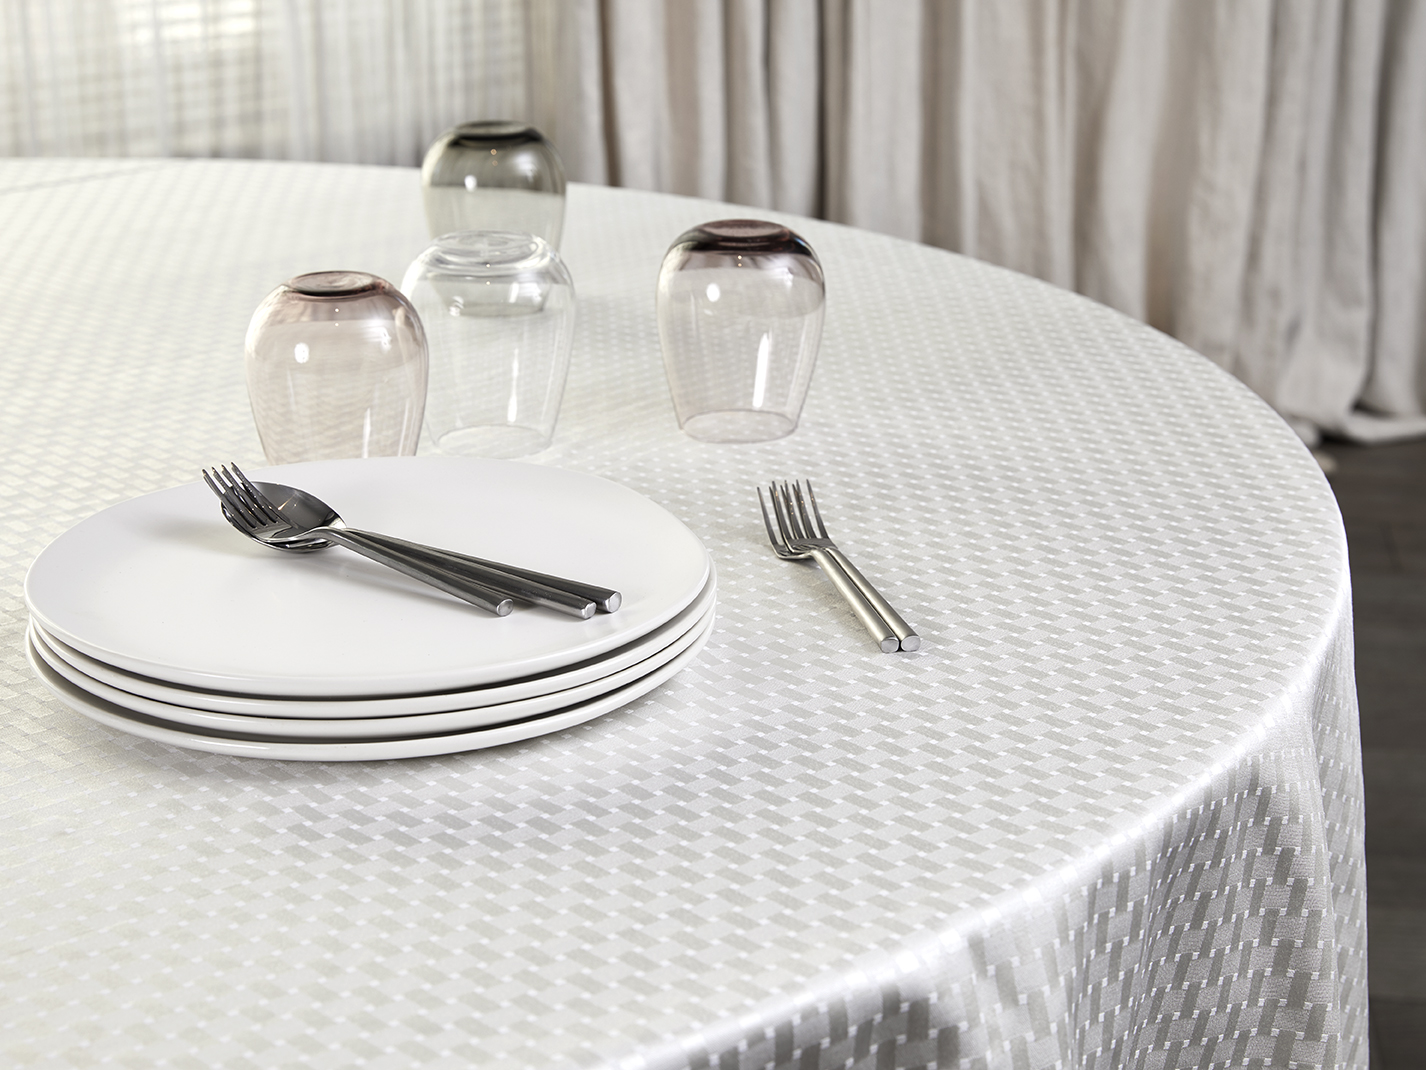 Revival_New_York_Luxury_Table_Linens_Overlays_Underlays_Custom_Products_Hospitality_Hotels